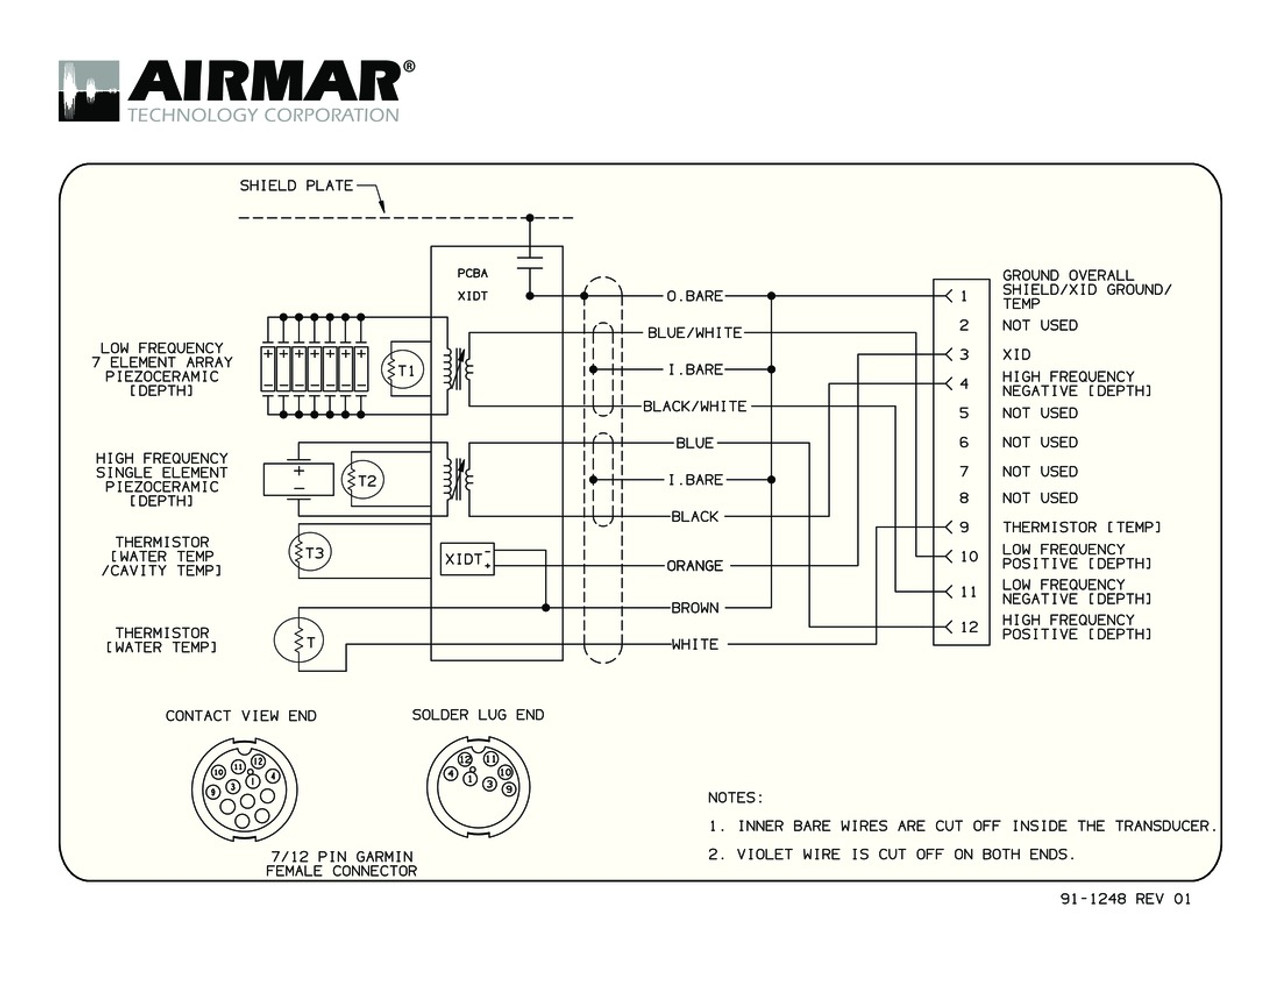 small resolution of airmar wiring diagram cm275 blue bottle marine transducer for lowrance wiring diagrams transducer wiring diagram